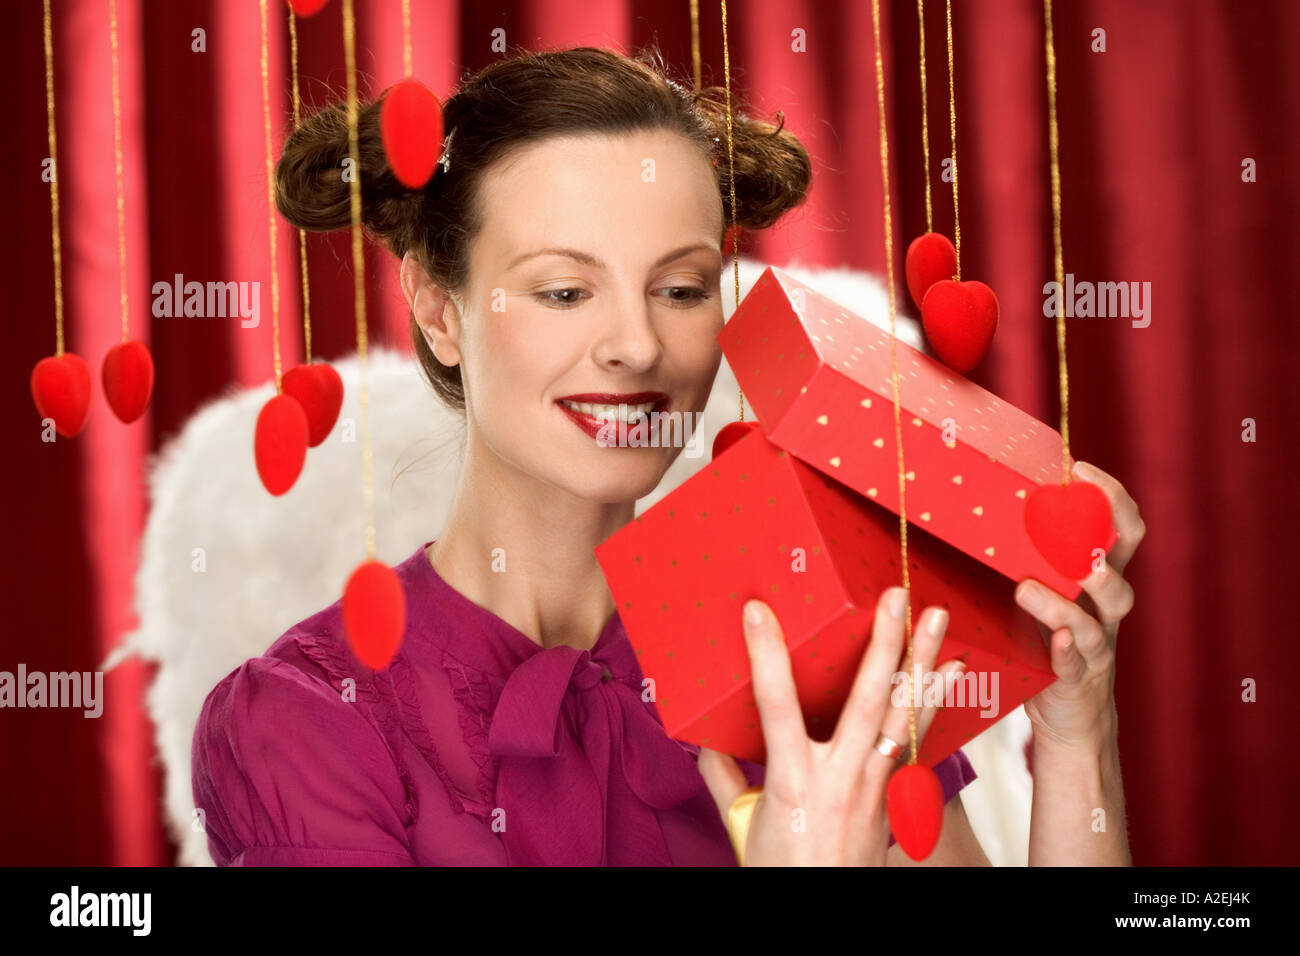 1219207 indoor studio young woman girl 20 35 brunette hairdo hairstyle purple blouse hold box red present open unpack - Stock Image